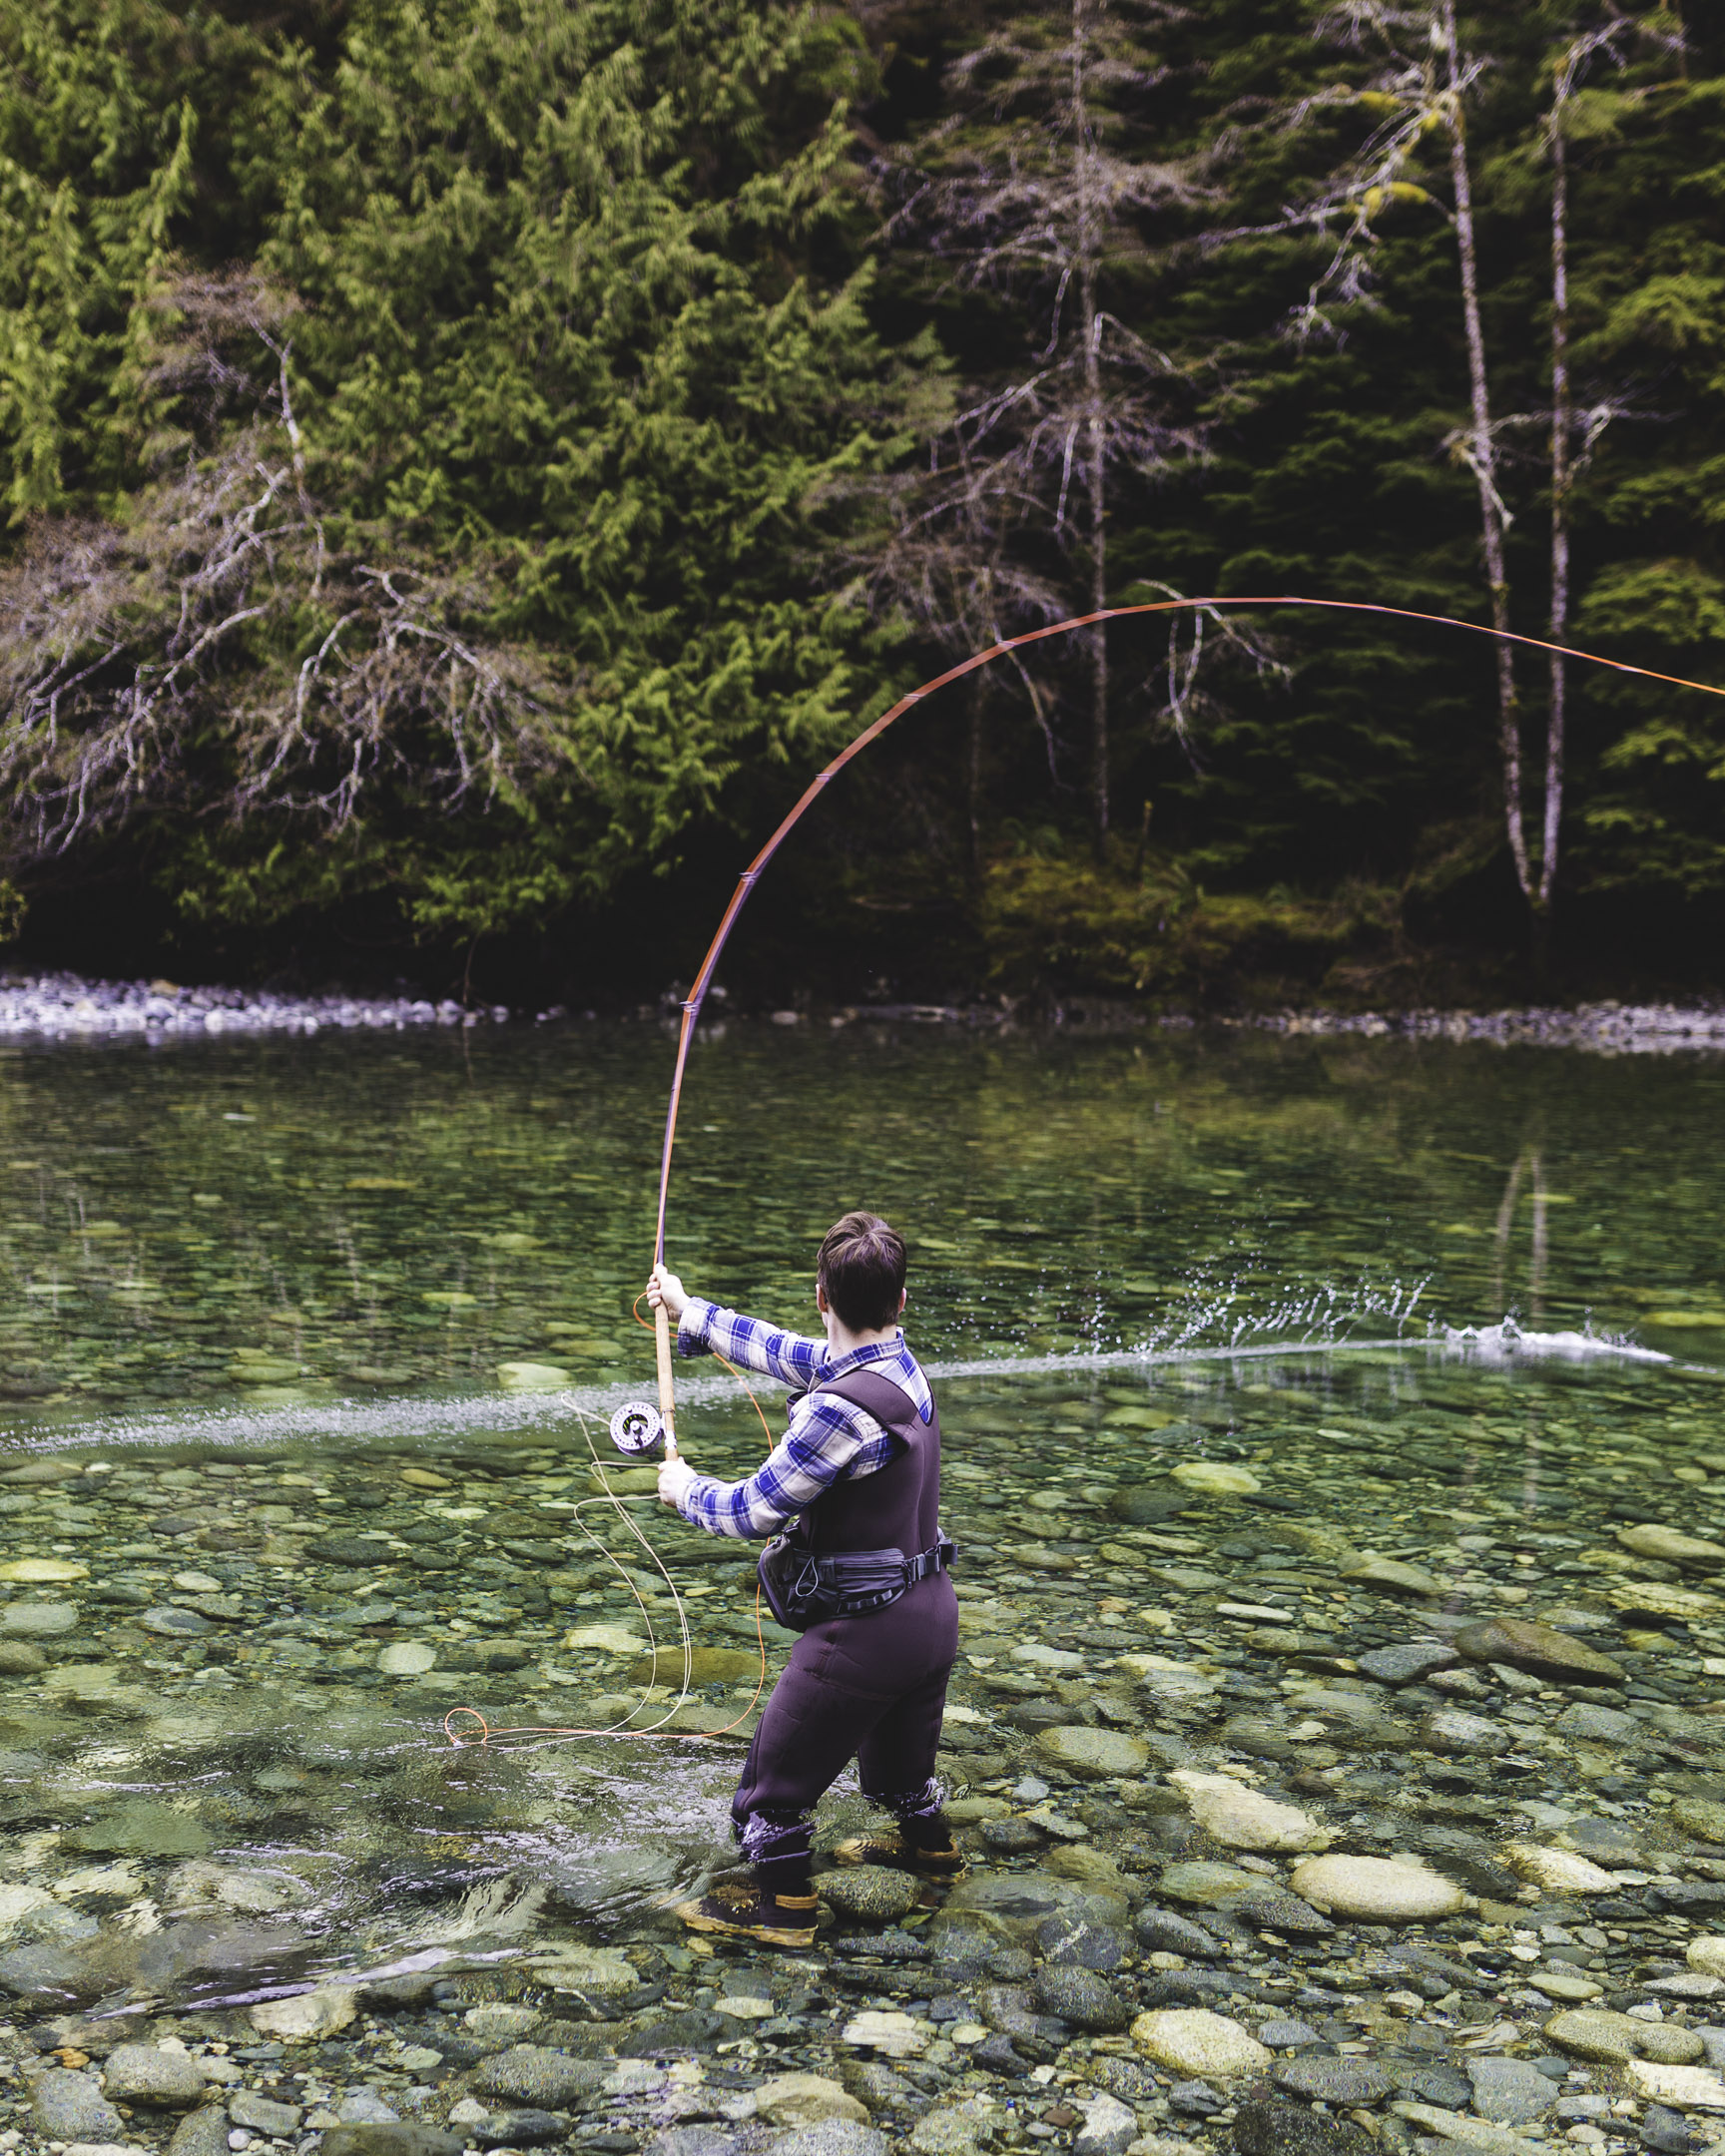 A fly fisherman casting on a shallow clear river in Port Renfrew, BC, Canada